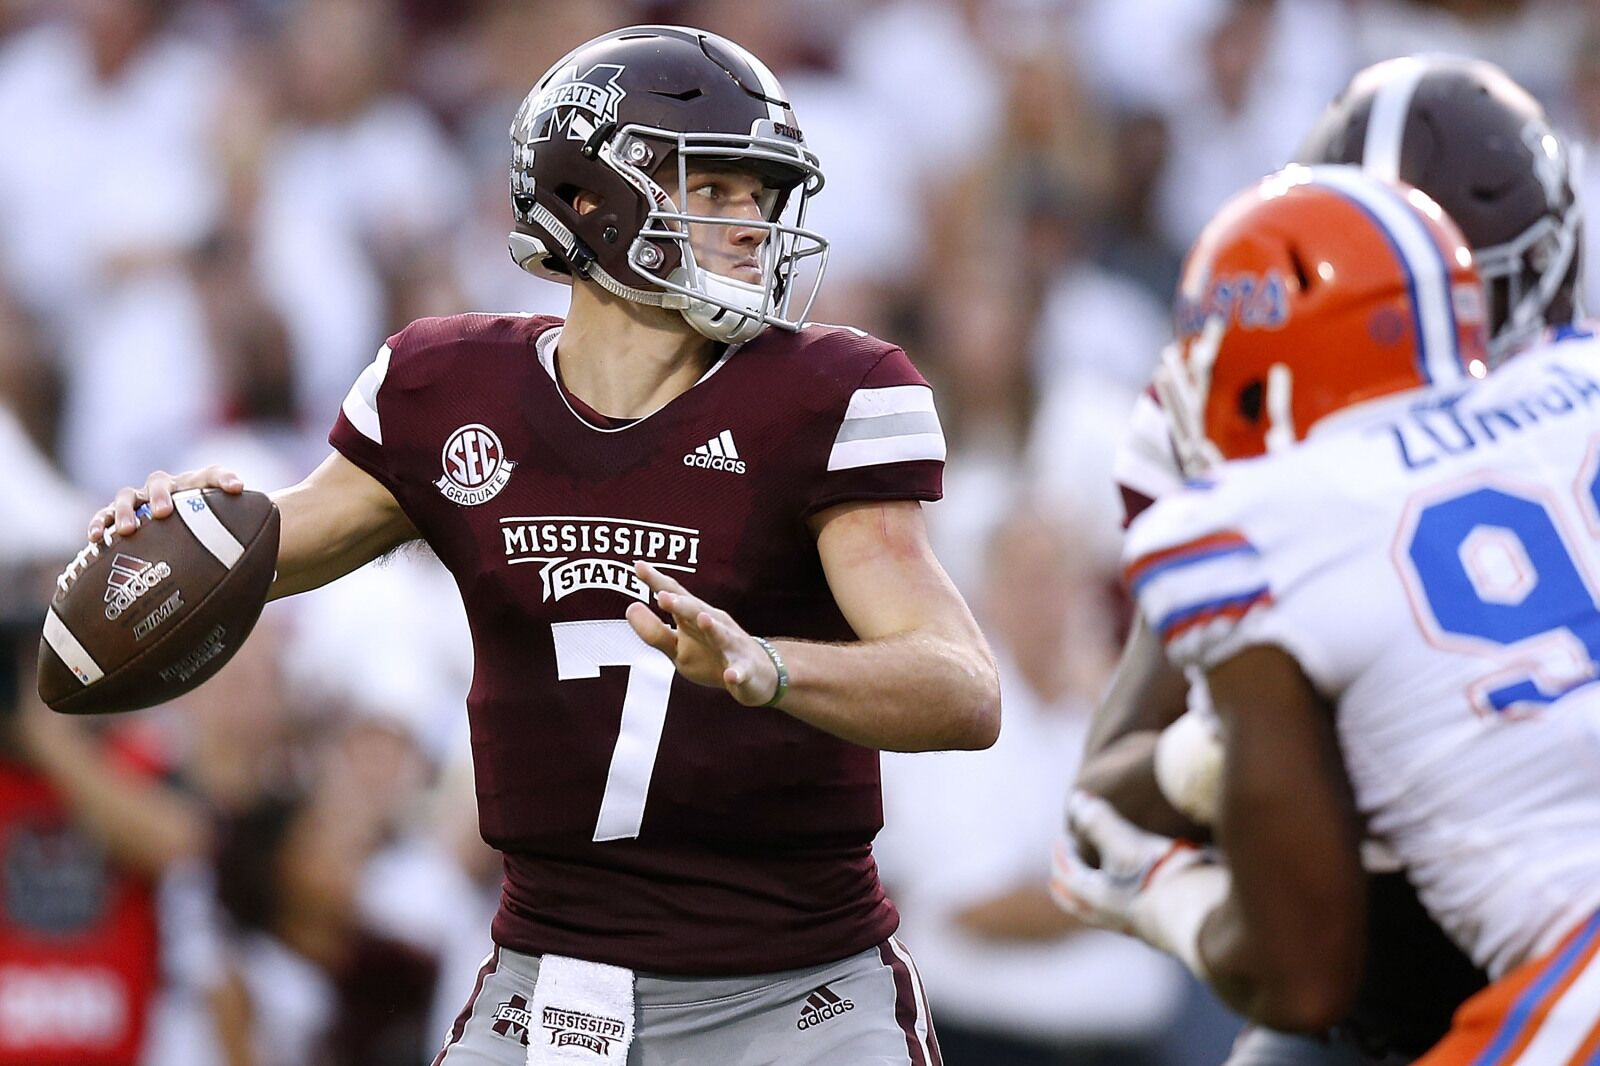 Mississippi State football: Auburn Tigers slight favorite ...